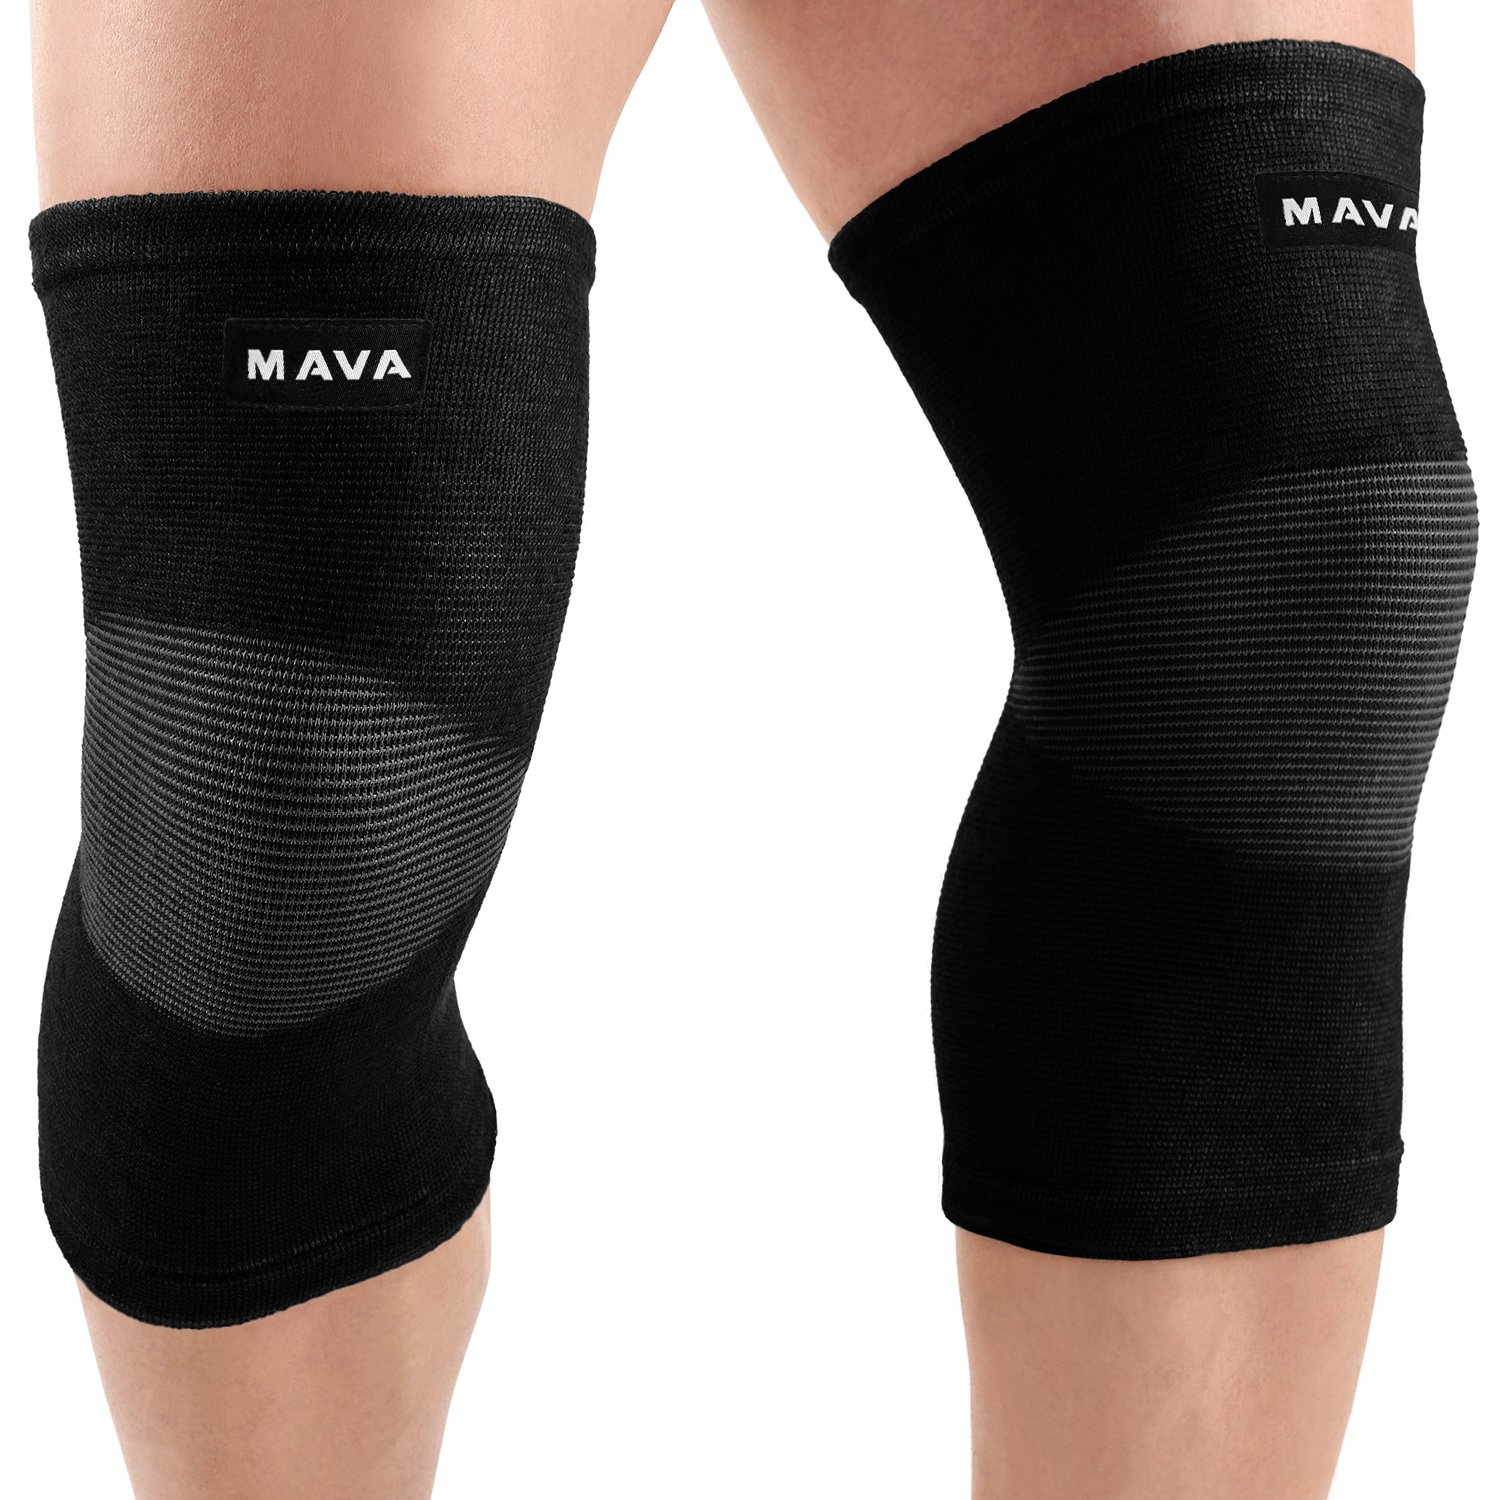 Mava Sports Meniscus Knee Support for Knee Caps Protection by Mava Sports